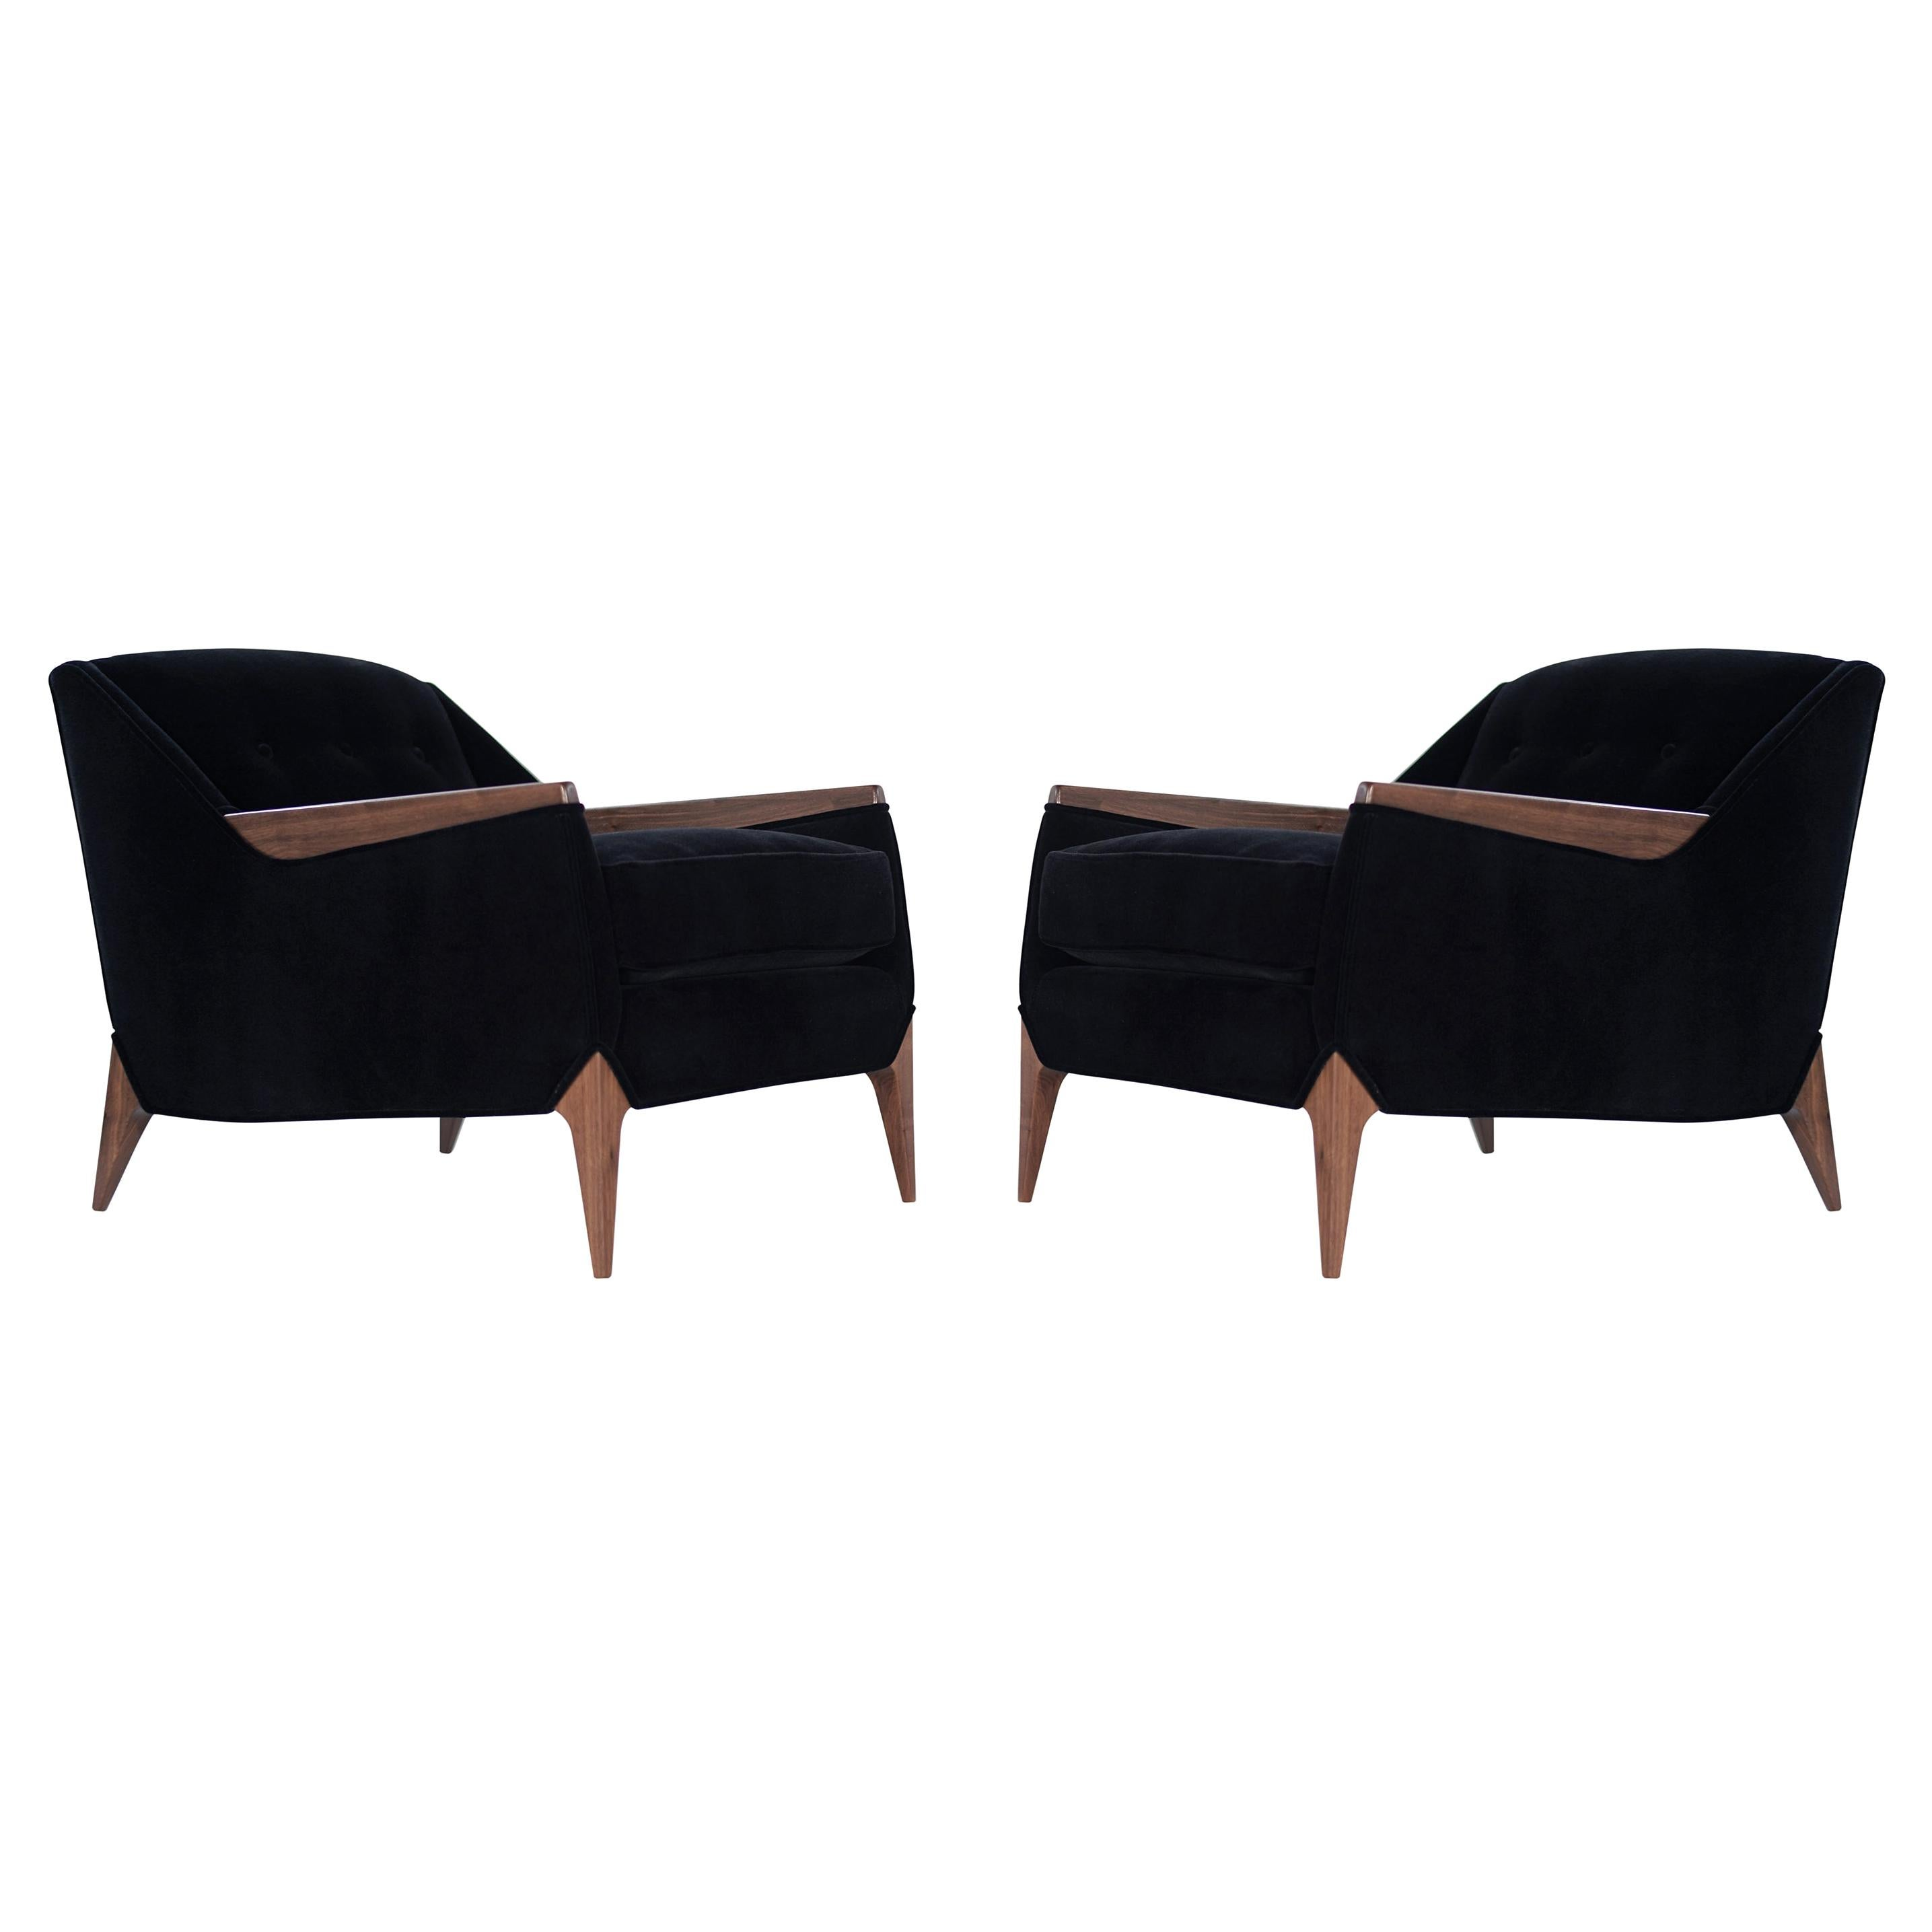 Set of Sculptural Italian Reading Lounges in Mohair, 1950s